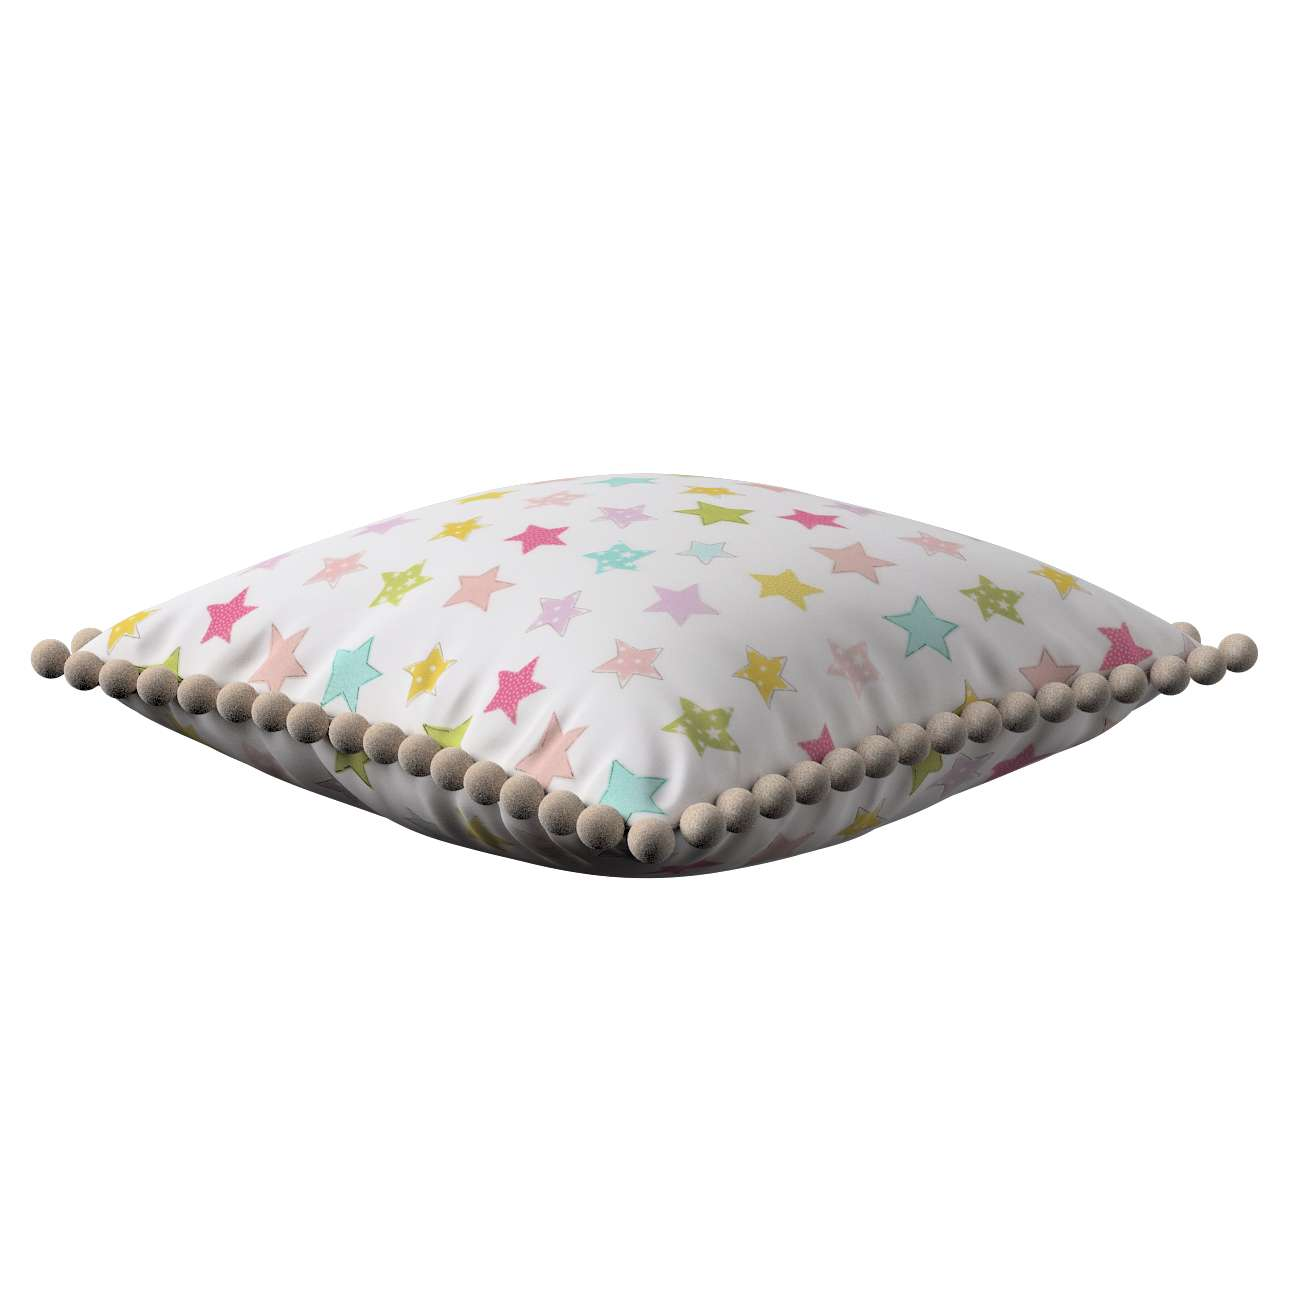 Vera cushion cover with pom poms in collection Little World, fabric: 141-52